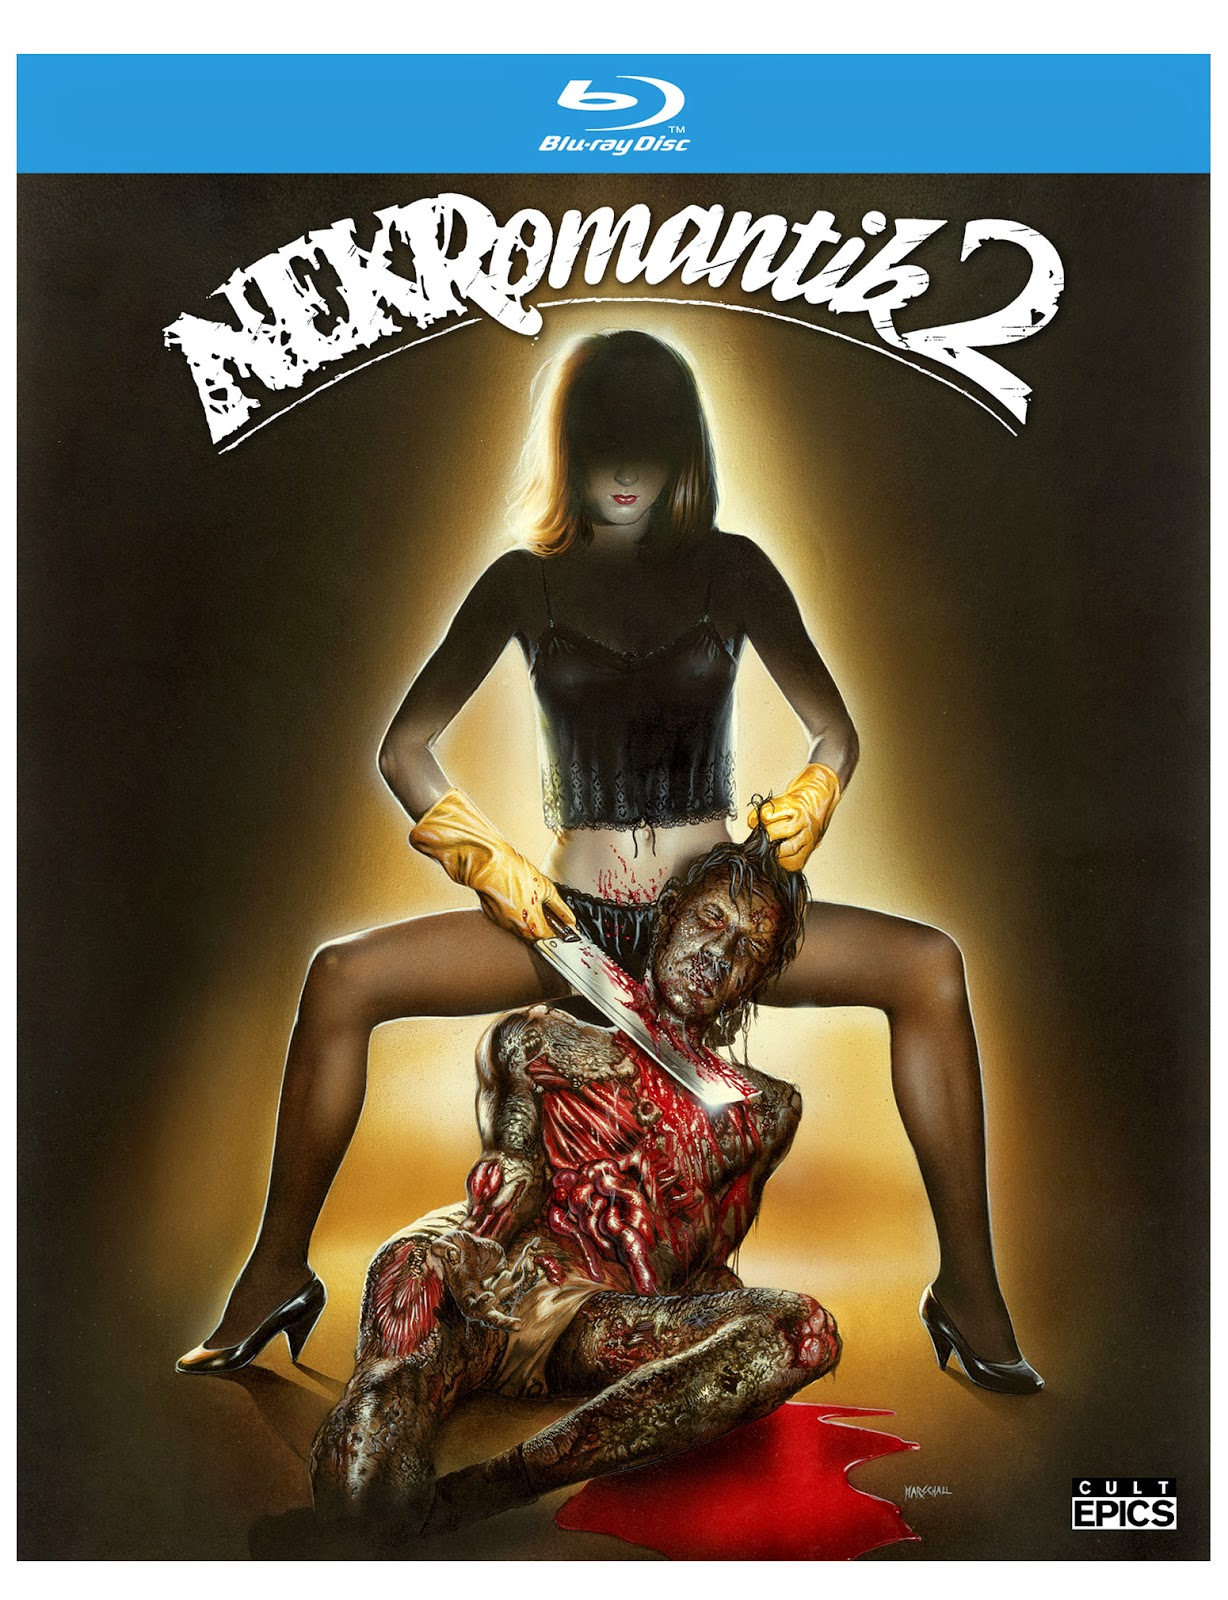 http://horrorsci-fiandmore.blogspot.com/p/nekromantik-2-film-begins-where-first.html